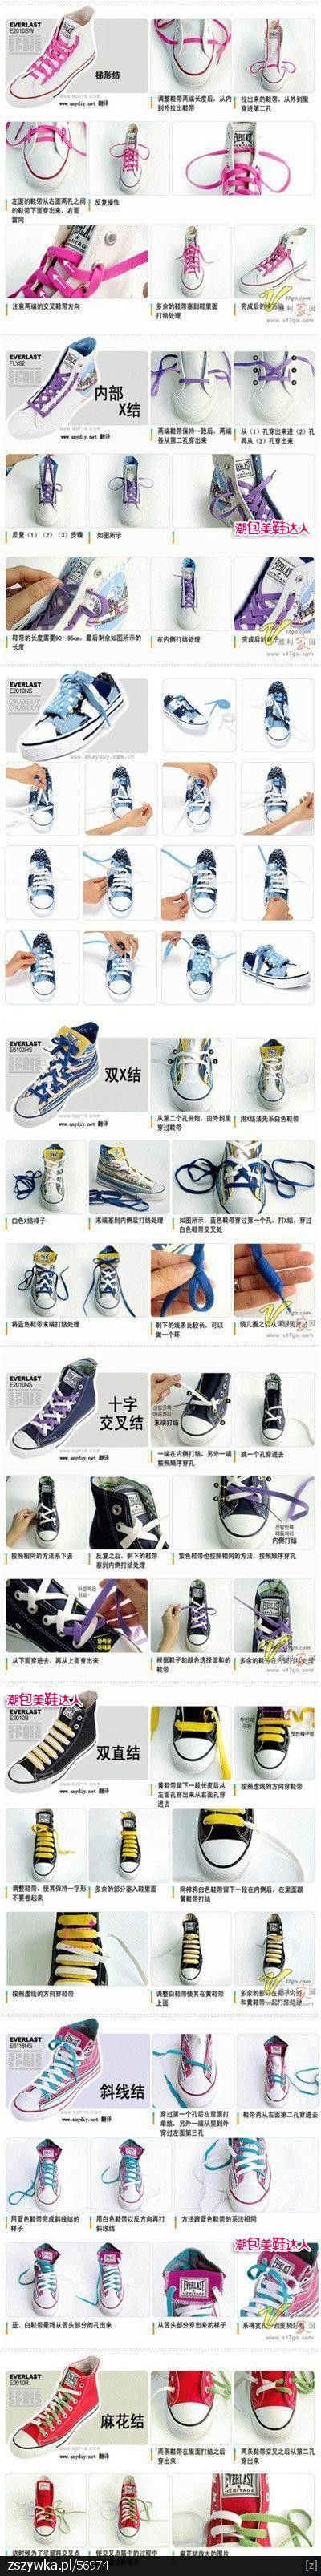 trampki: Shoes, Ideas, Fashion, Crazy Shoelaces, Style, Tie Shoelaces, Clothes, Diy